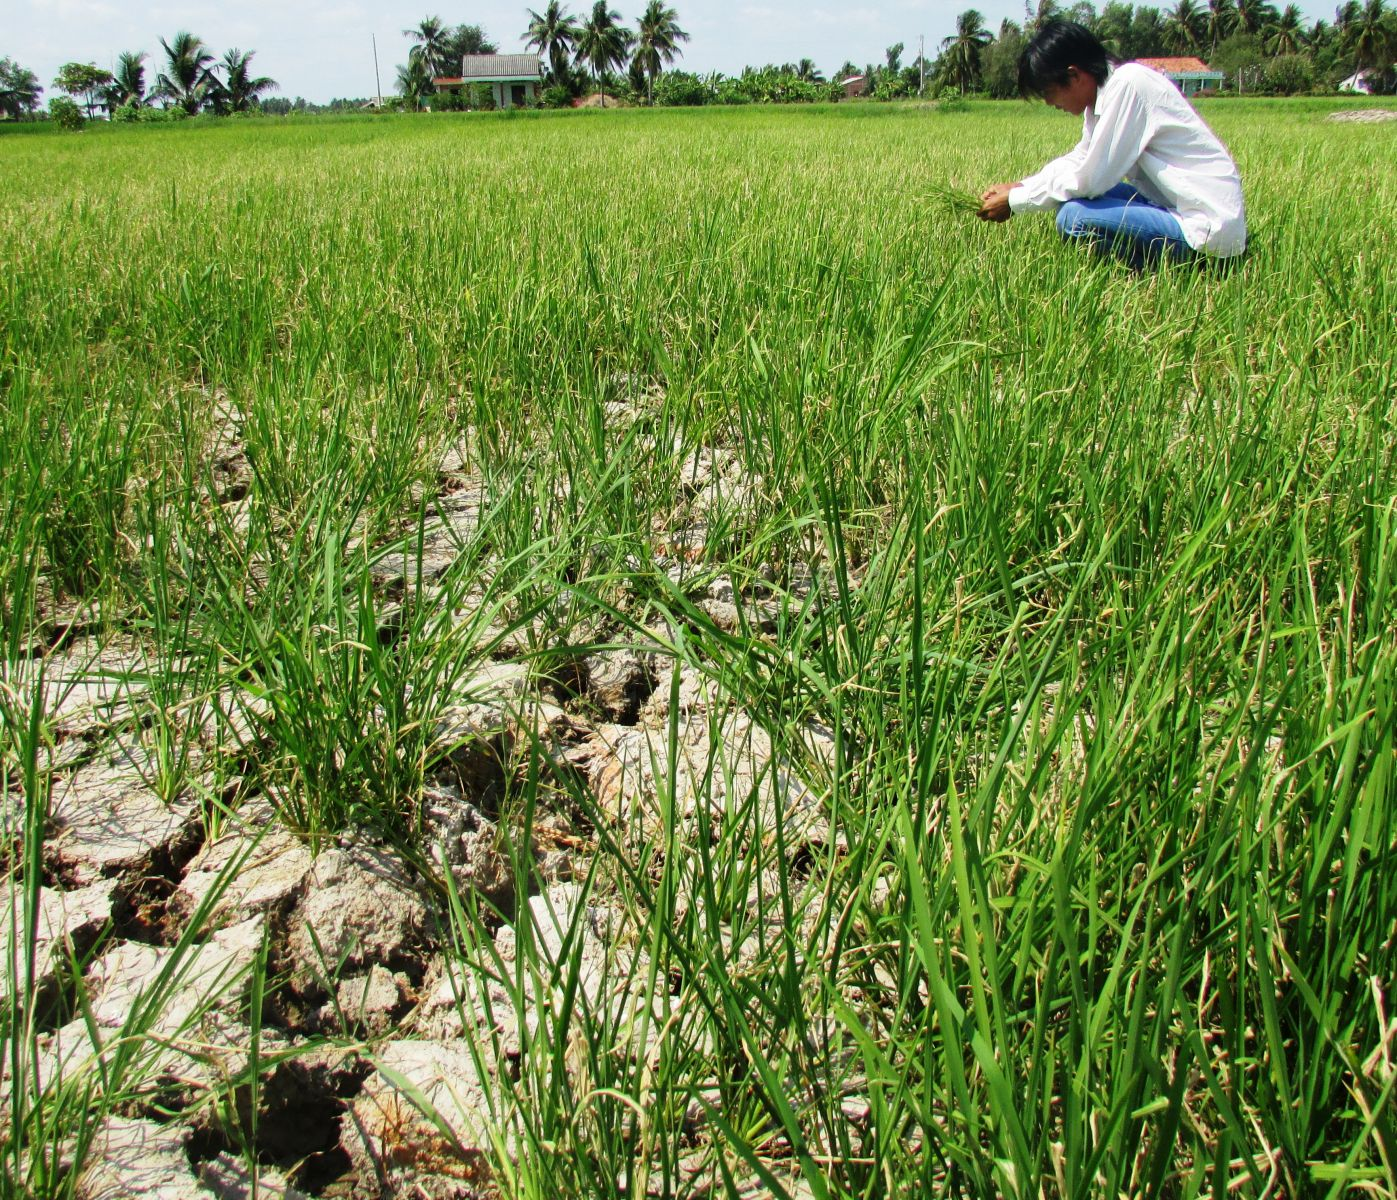 Drought has always been a concern for people in the MRD